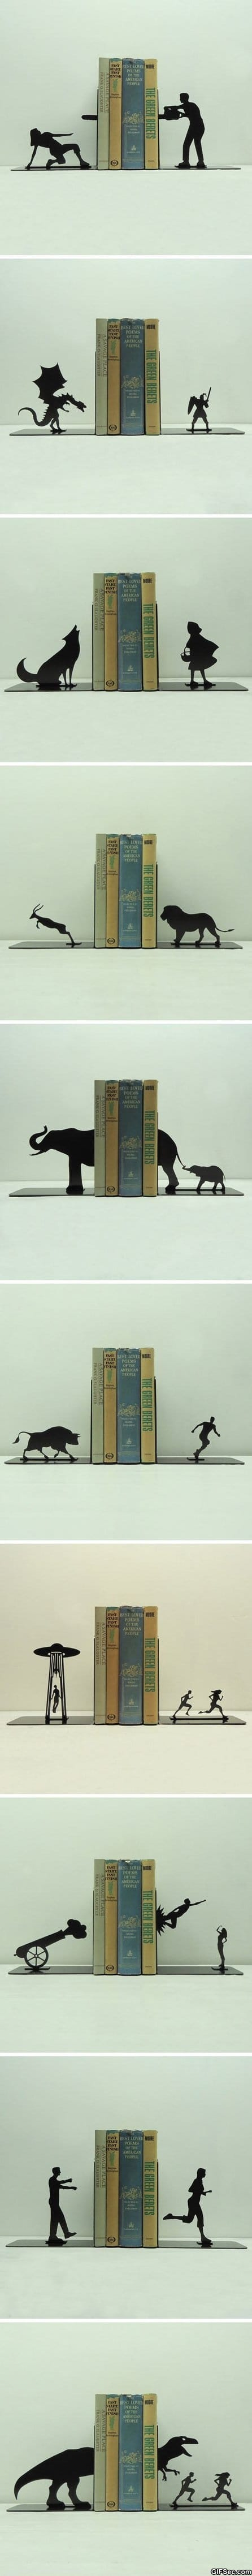 Funny - Creative Bookends